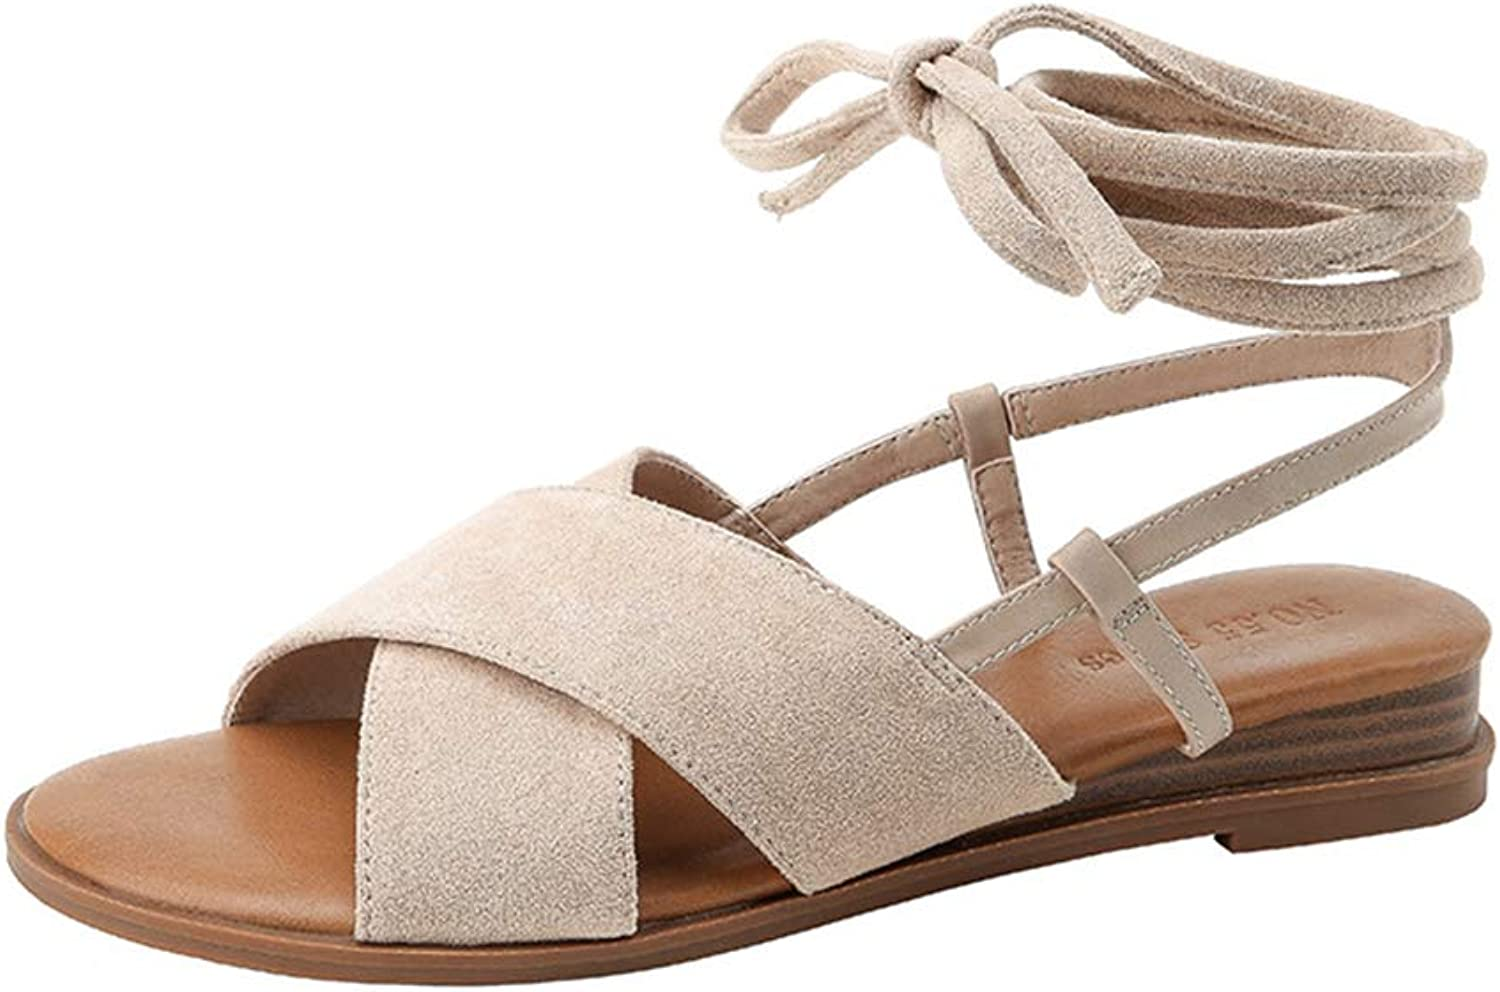 Womens Sandals Flat Suede Ladies Credver Summer shoes with Ankle Strap shoes Walking shoes Driving shoes,Brown,38